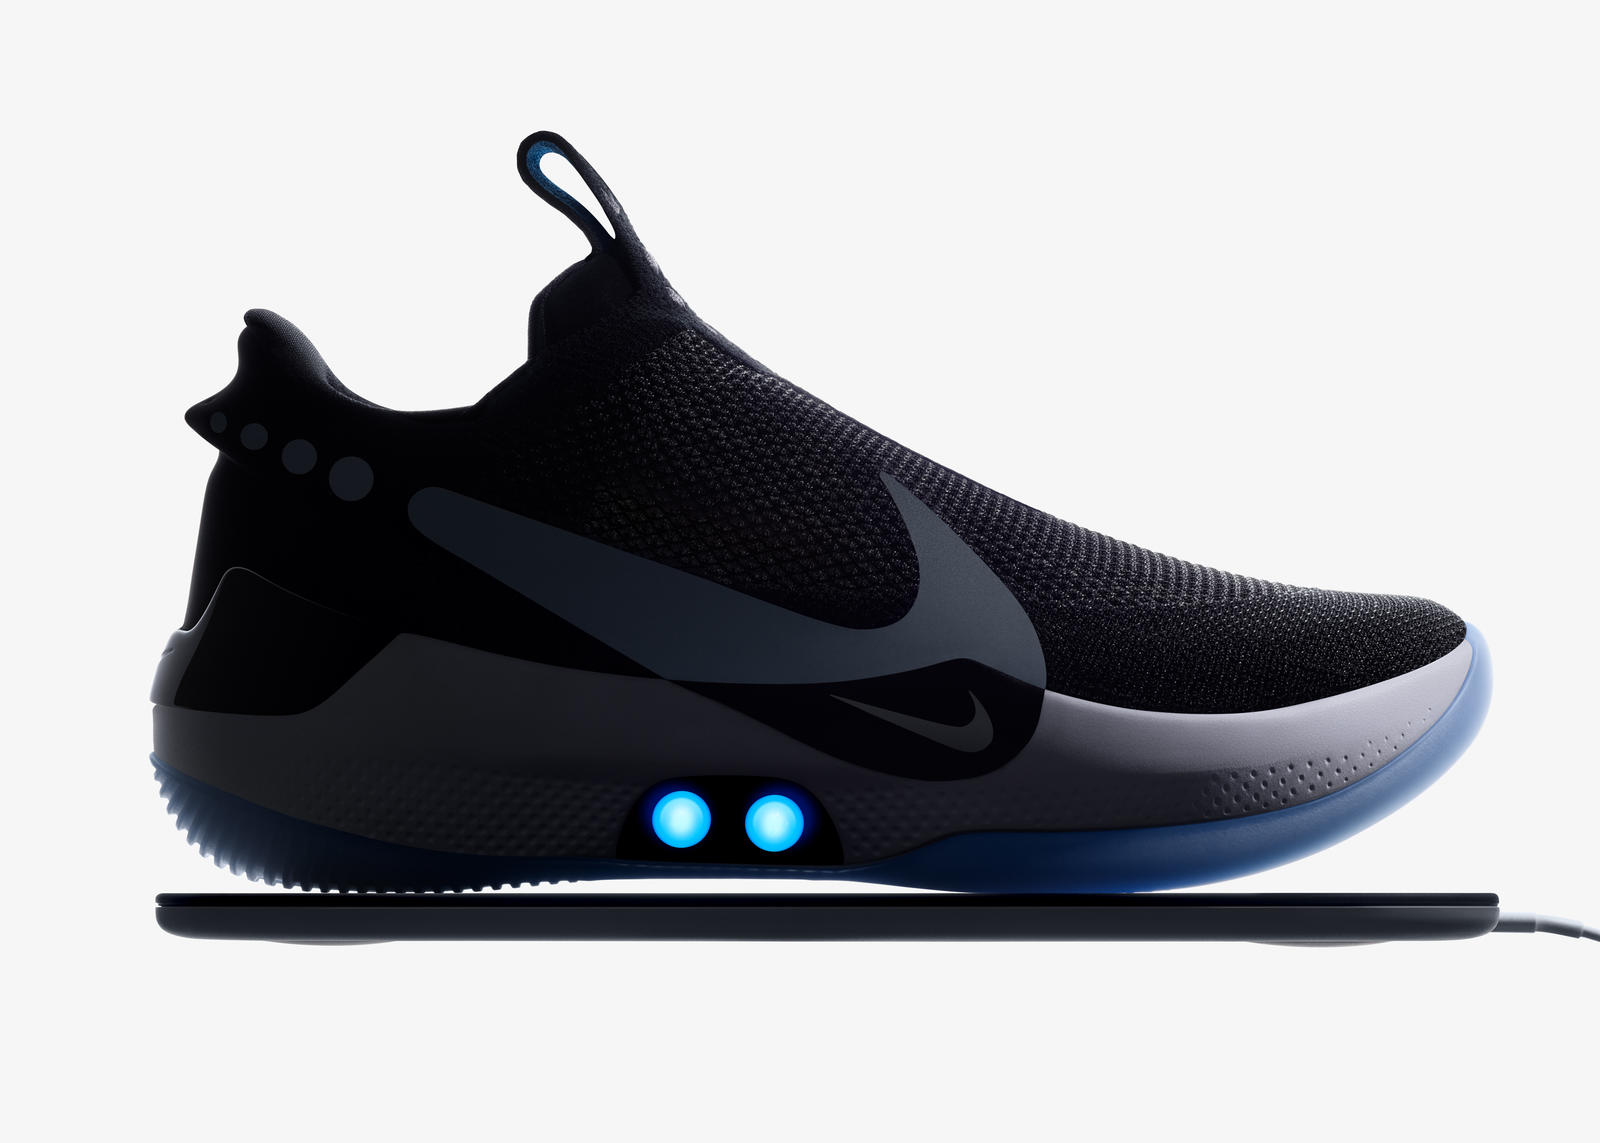 25271c6dcca6 What is Nike Adapt  4. The new Nike Adapt BB basketball shoe